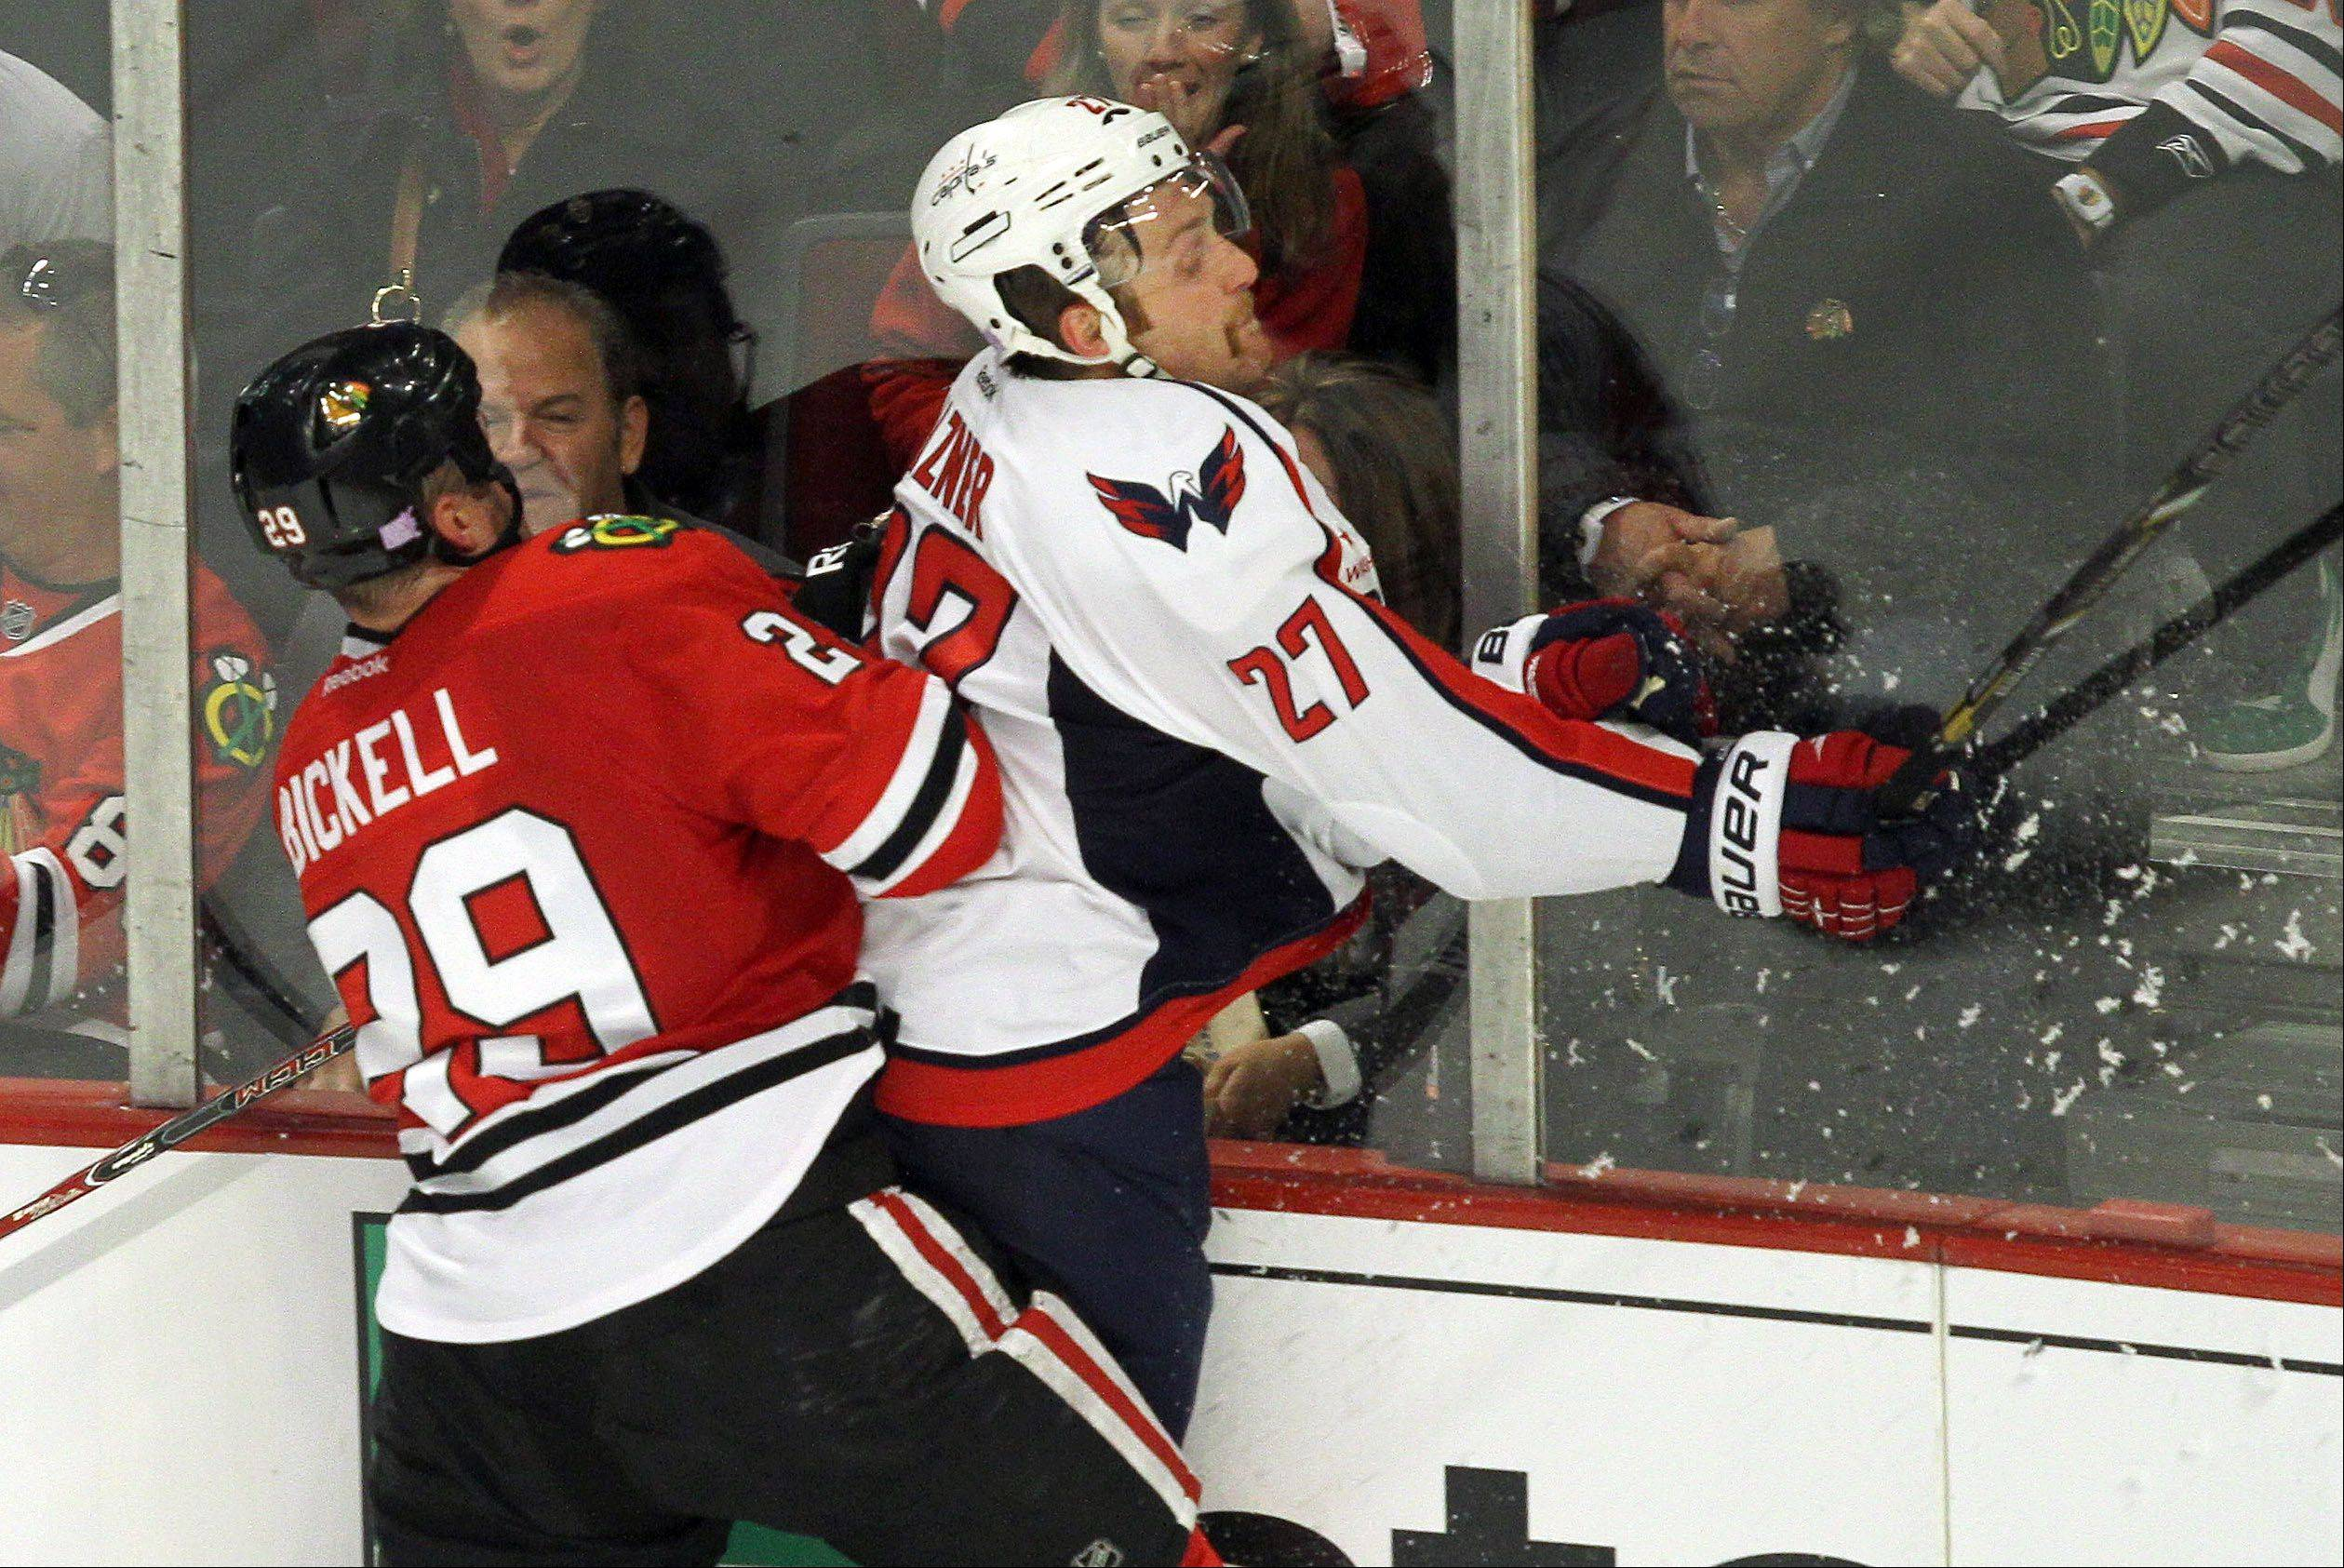 Chicago Blackhawks Bryan Bickell hits Washington Capitals defenseman Karl Alzner.